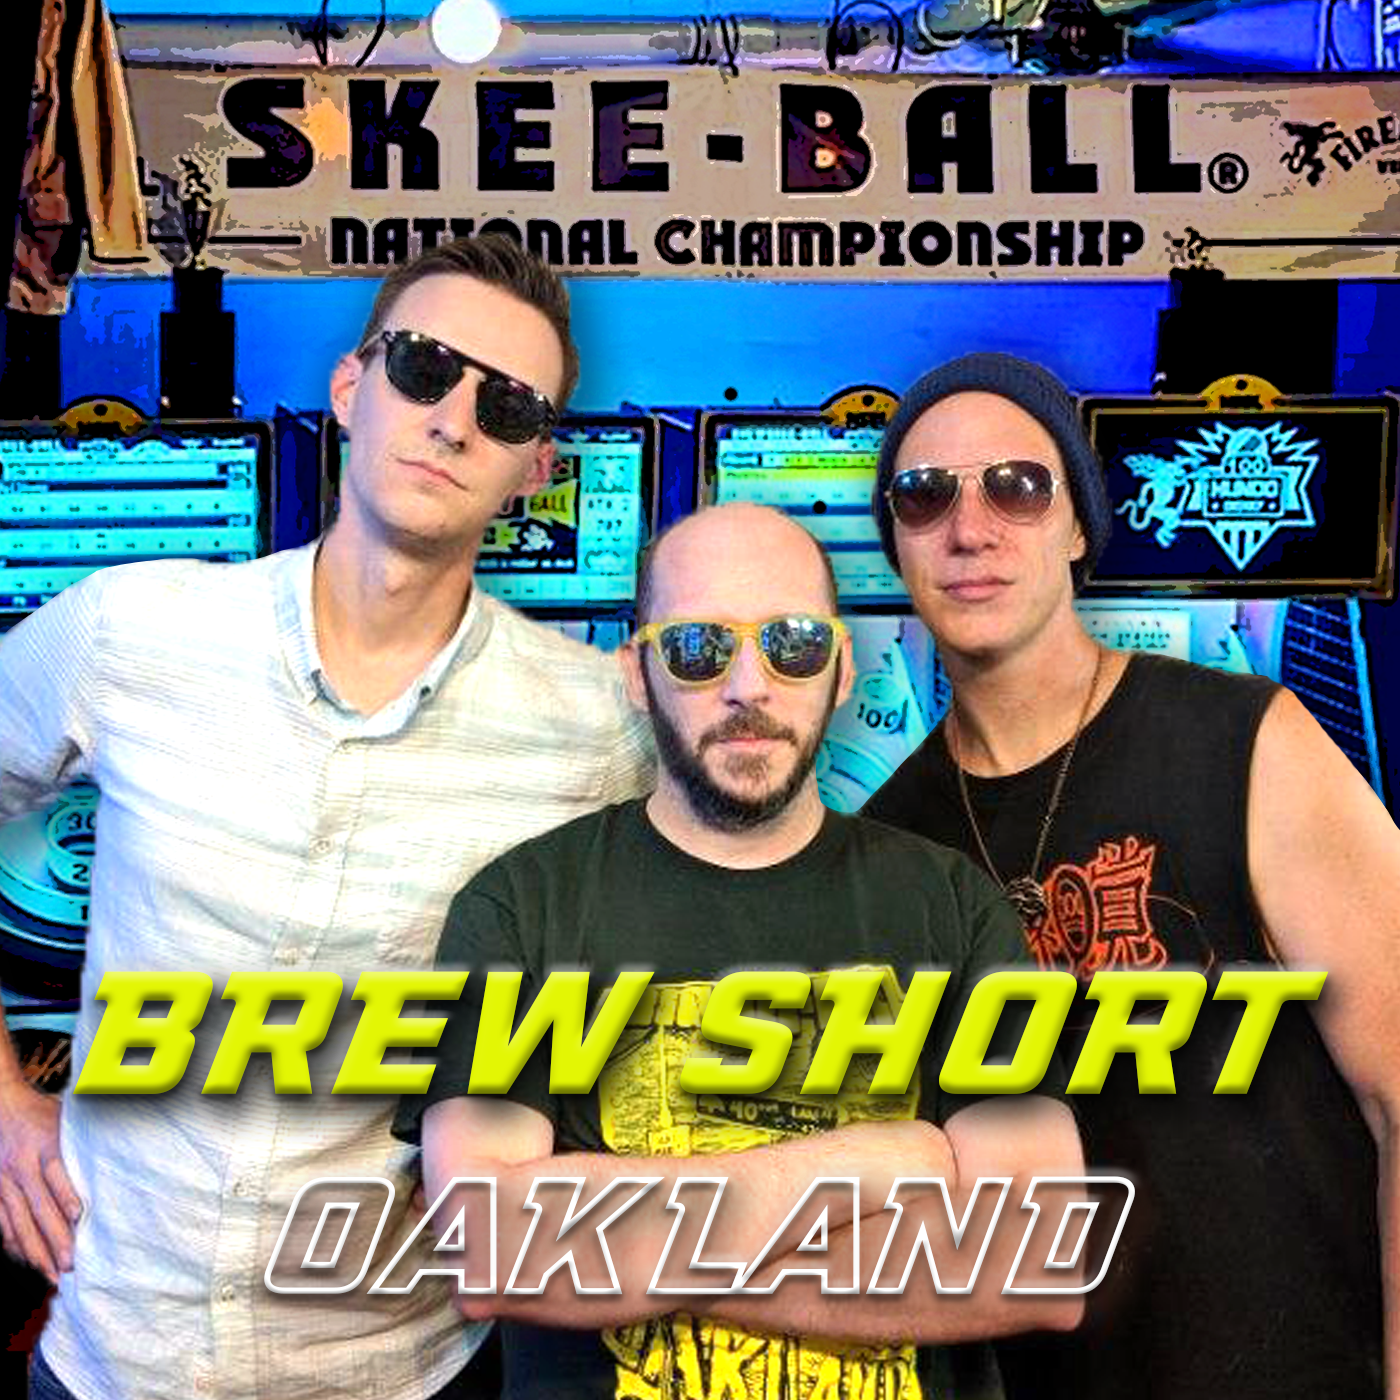 team of professional skee-ball players in sunglasses